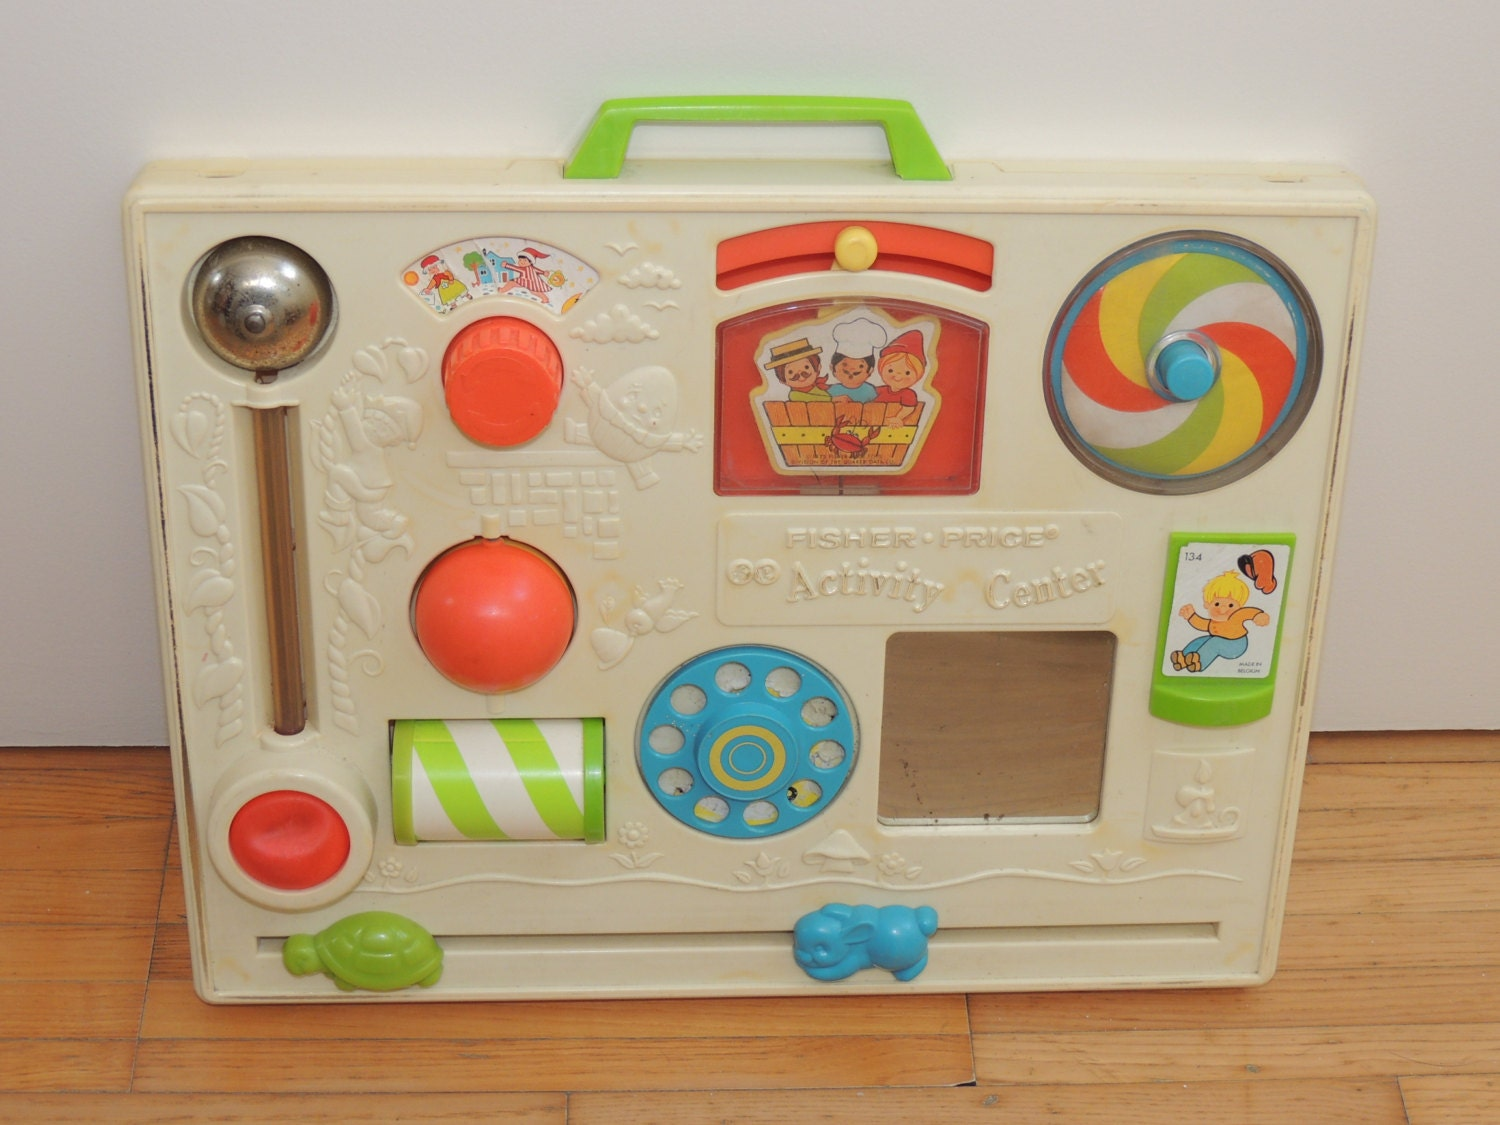 Activity center table 1973 fisher price toys child seventies - Table activite fisher price ...